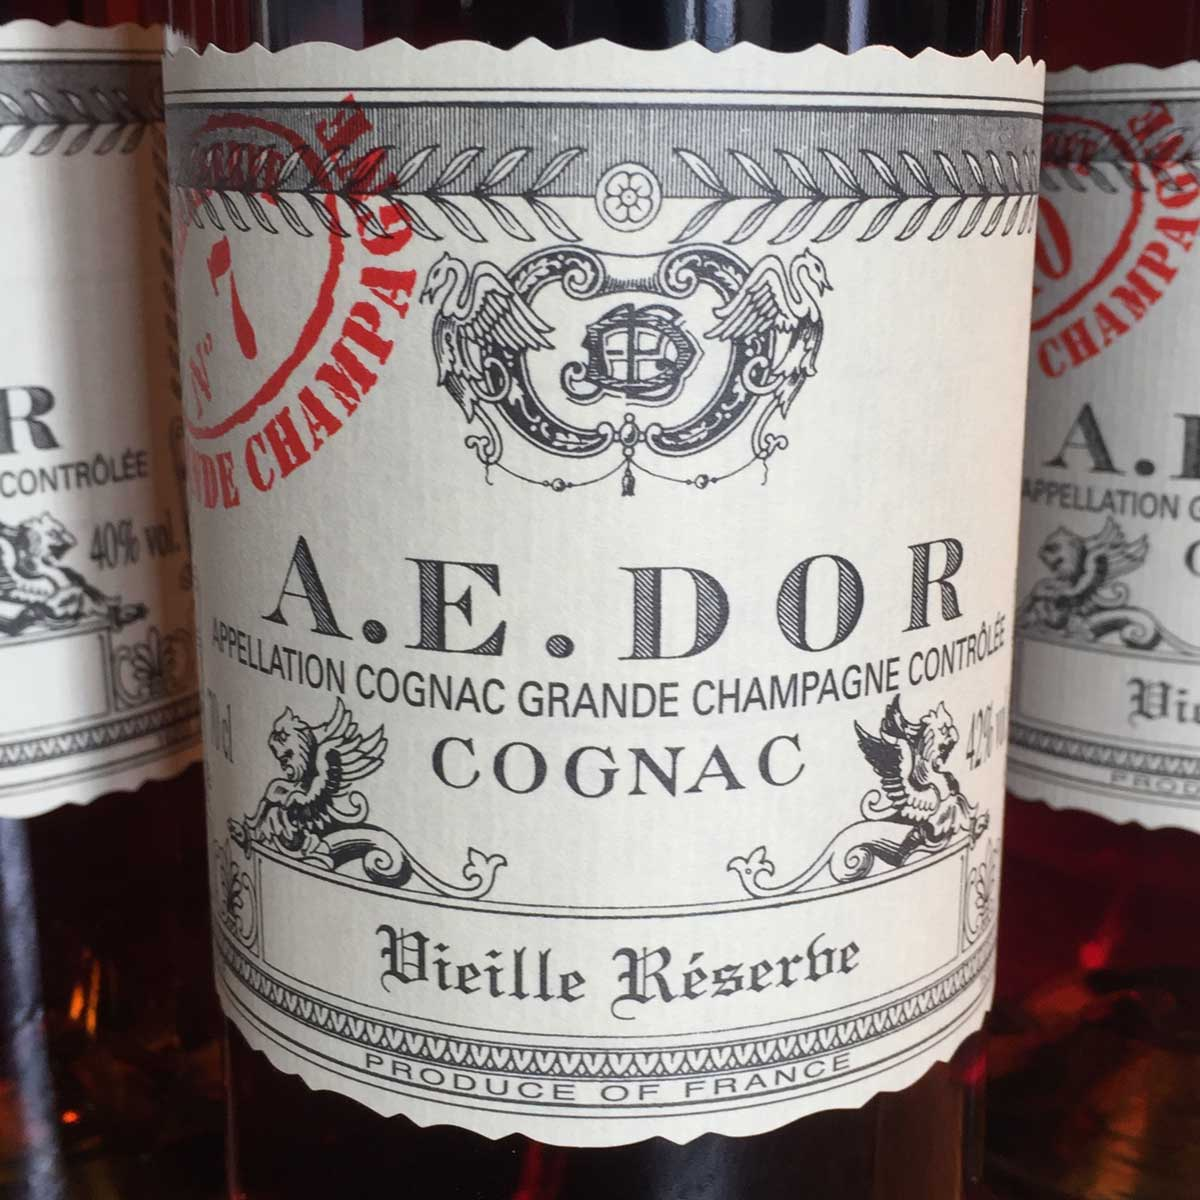 A.E. Dor Cognac: History Built on Passion and Quality